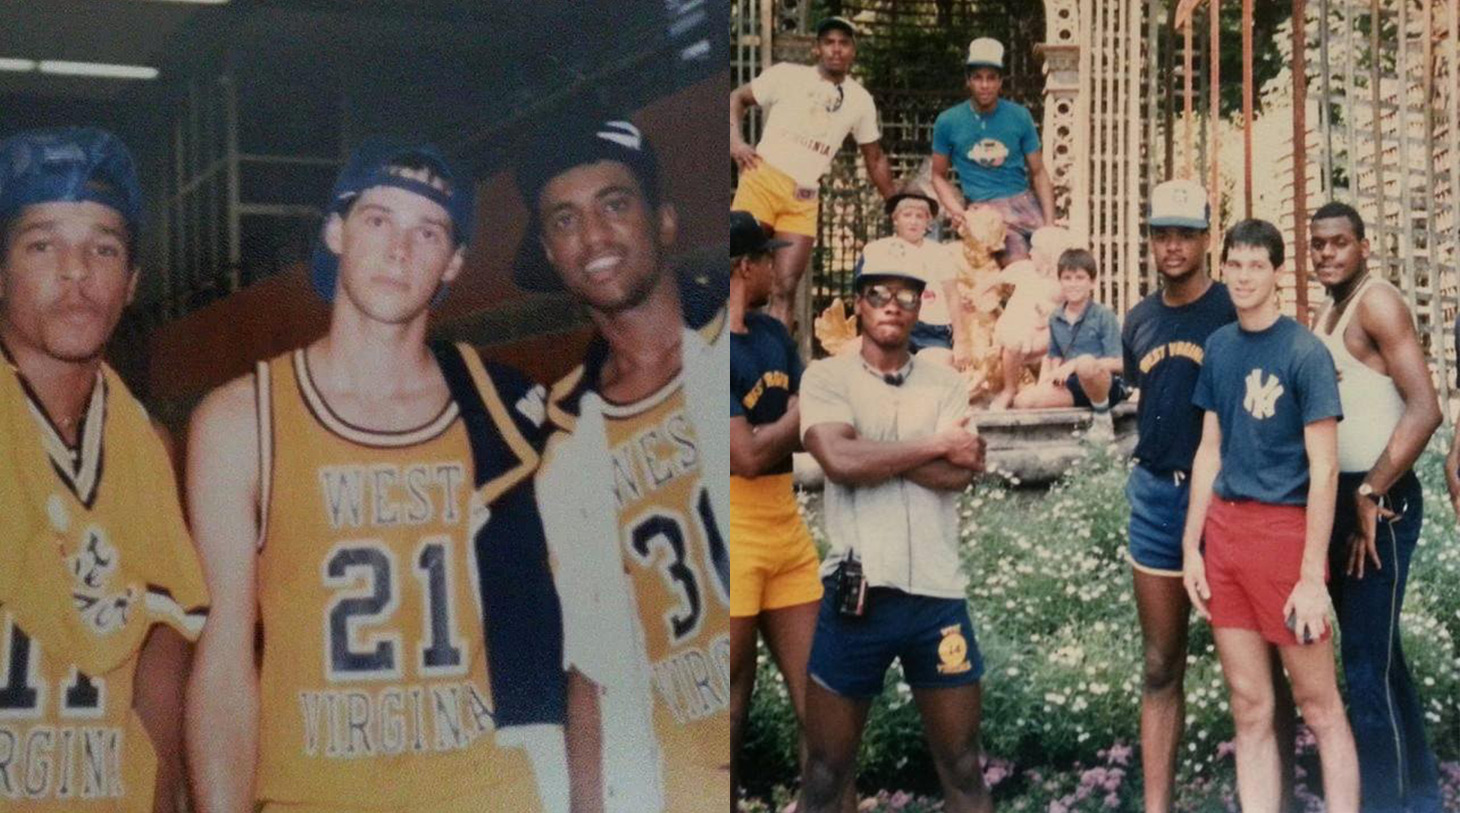 Dale Blaney had a Hall of Fame career at West Virginia and was fortunate enough to travel the world playing basketball. (The Dale Blaney Collection)